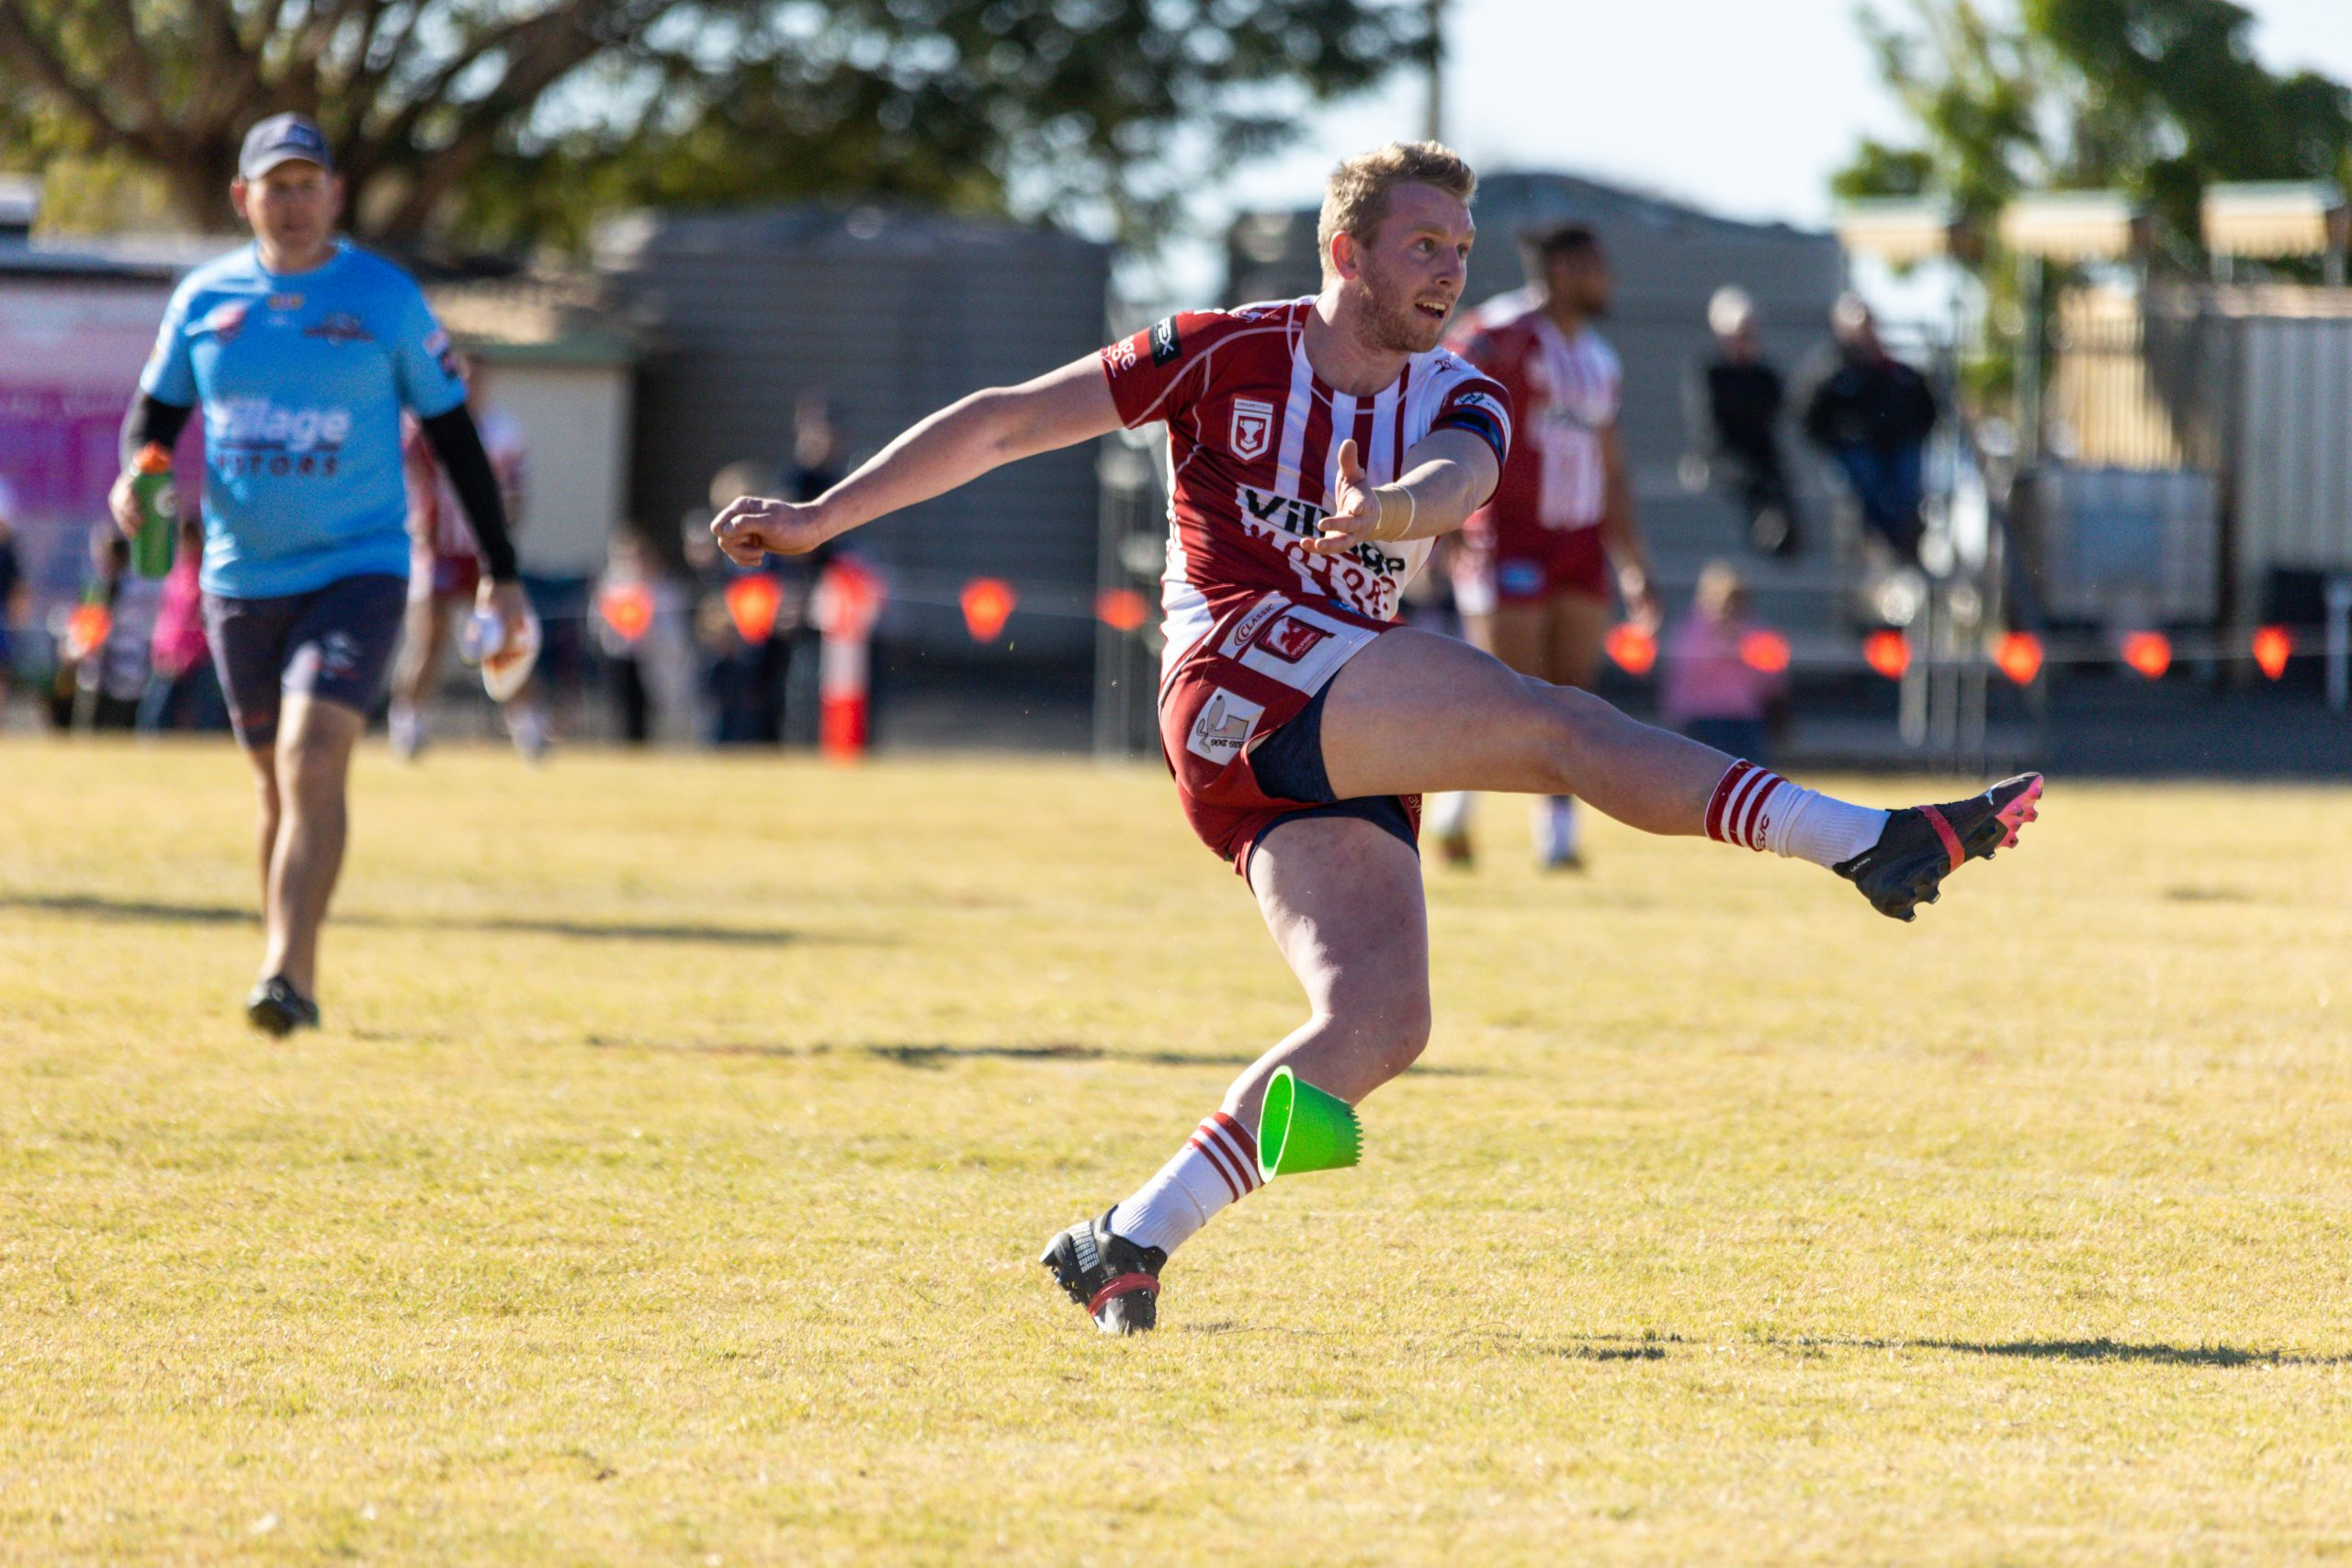 Redcliffe withstand Capras fightback